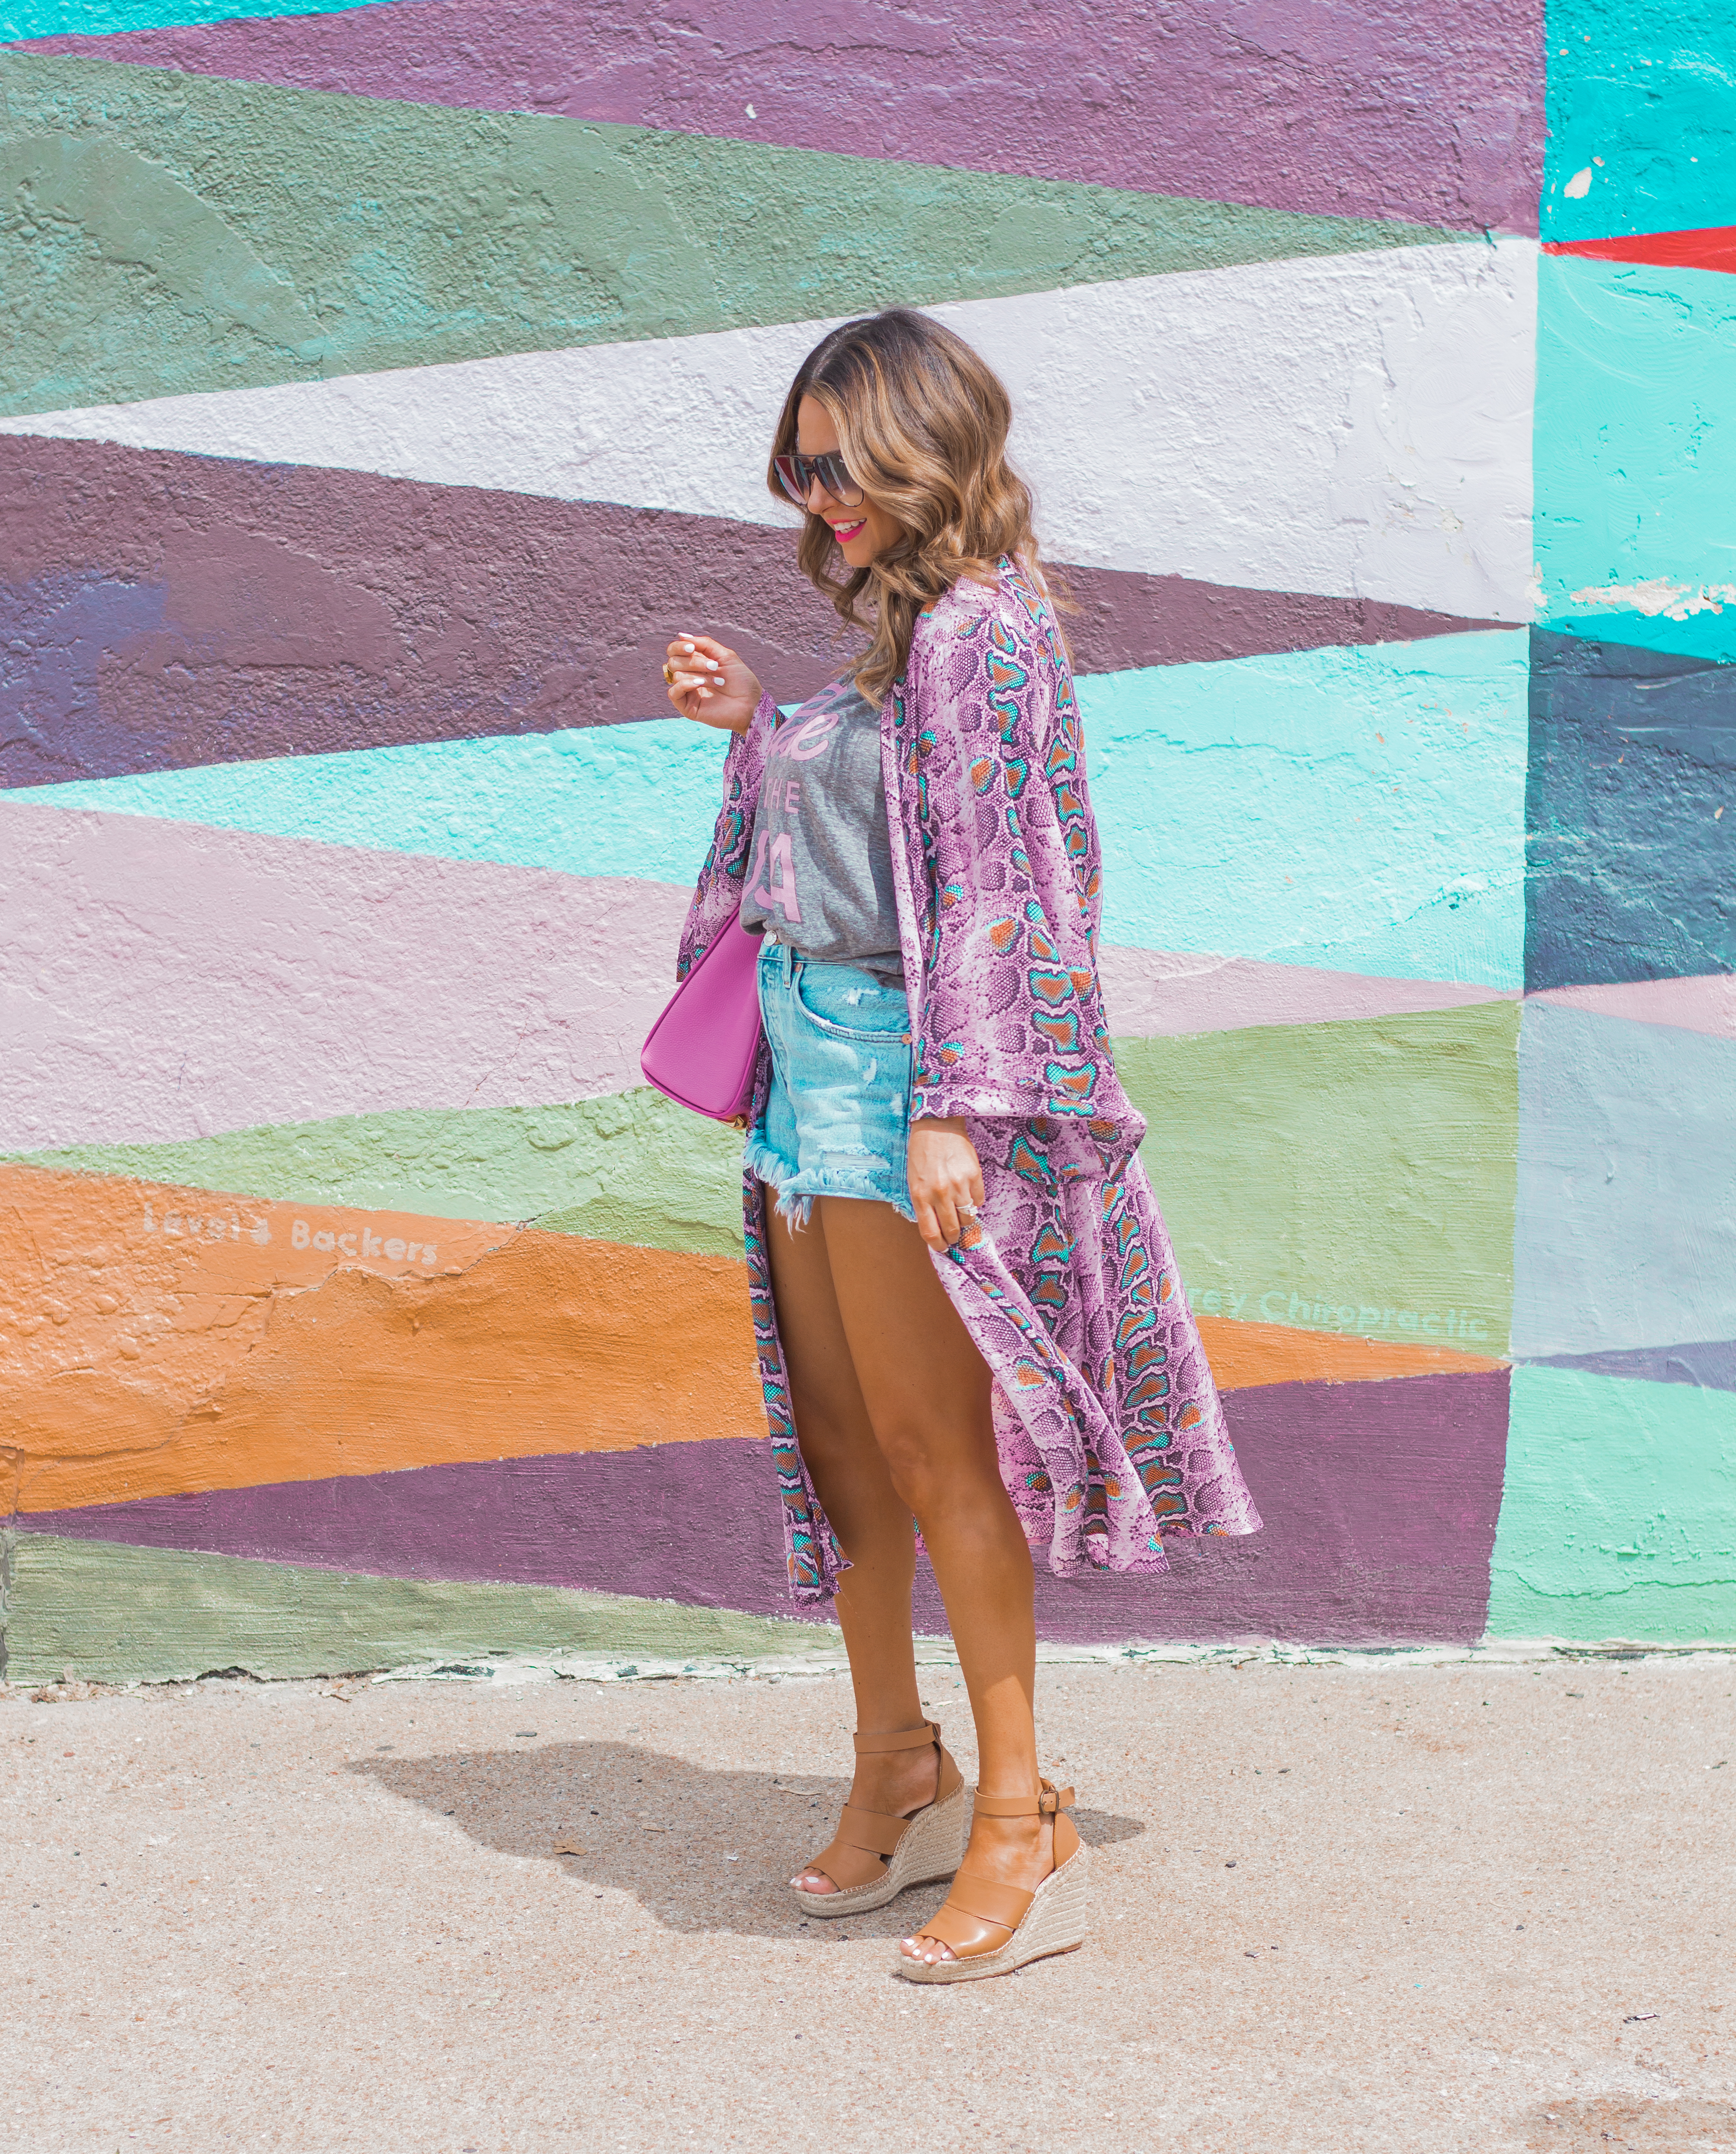 Rosé in the USA-Buddy Love-Kimono-Sugar Boutique-Women's Fashion-Summer Outfit-4th of July-Espadrille Wedges-MCM Bag-Pink Bag-Omaha Blogger-Sabby Style-Agolde Jean Shorts-Turquoise Jewelry-Quay Sunglasses-Colorful Style-Omaha-Nebraska-BaubleBar Earrings-7